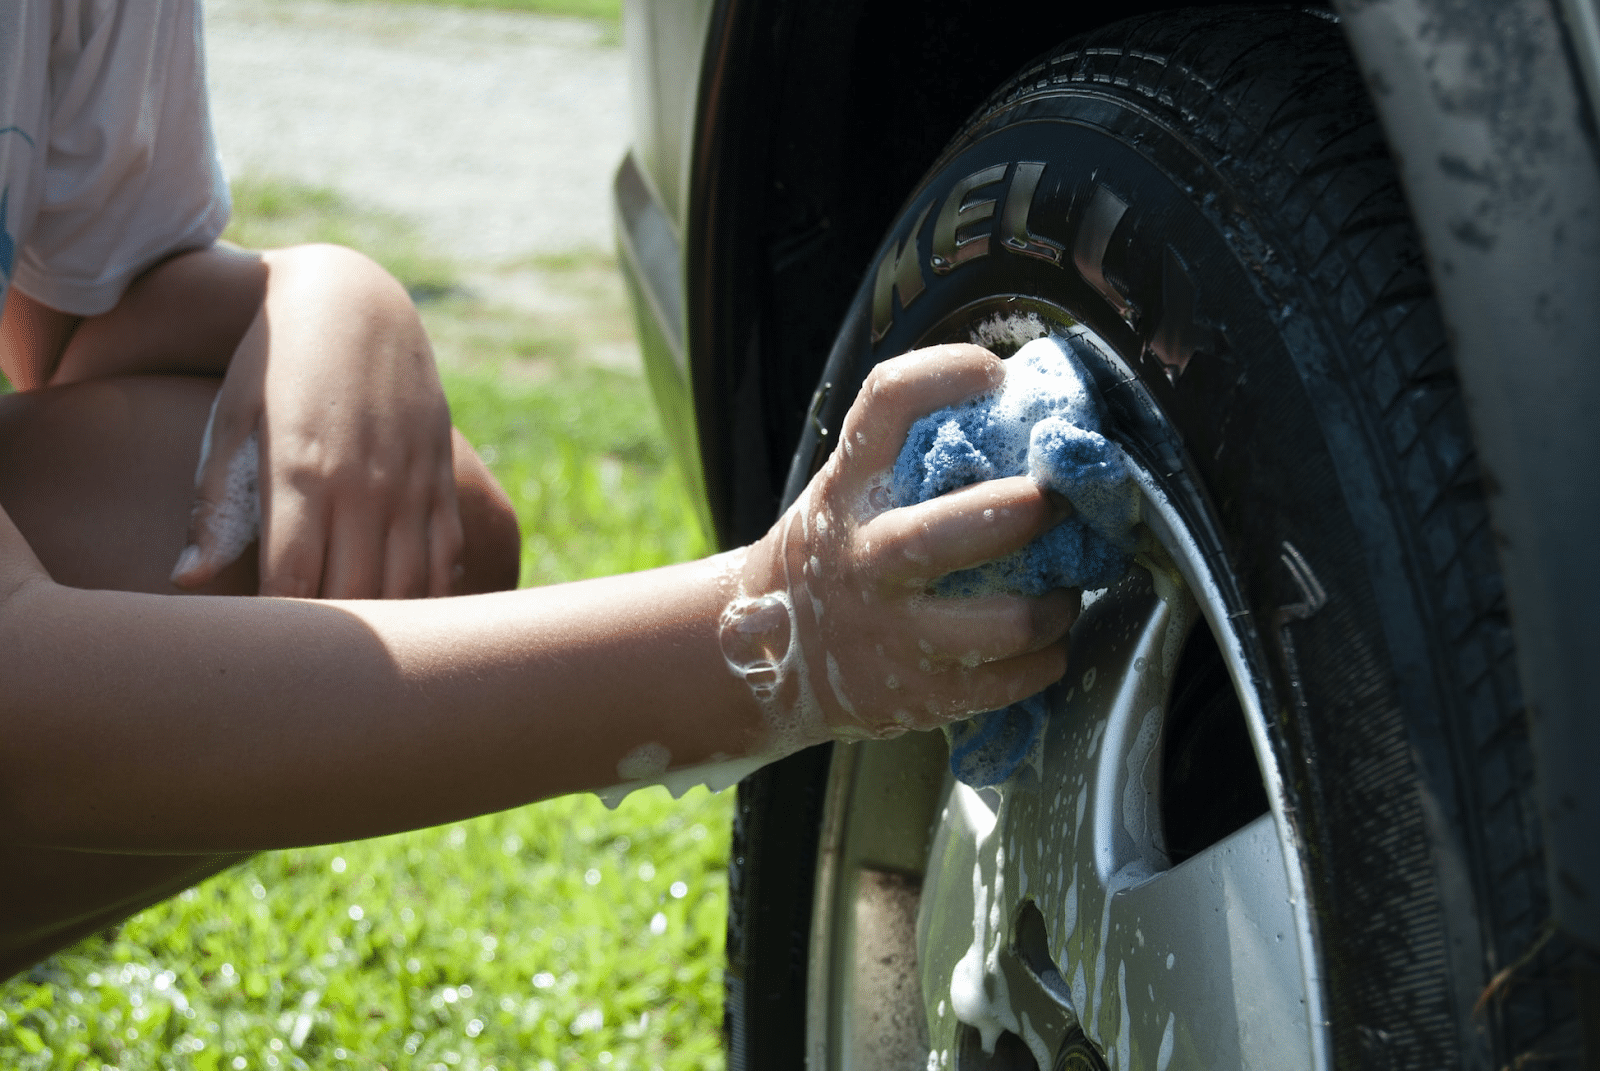 How to clean tires with household products